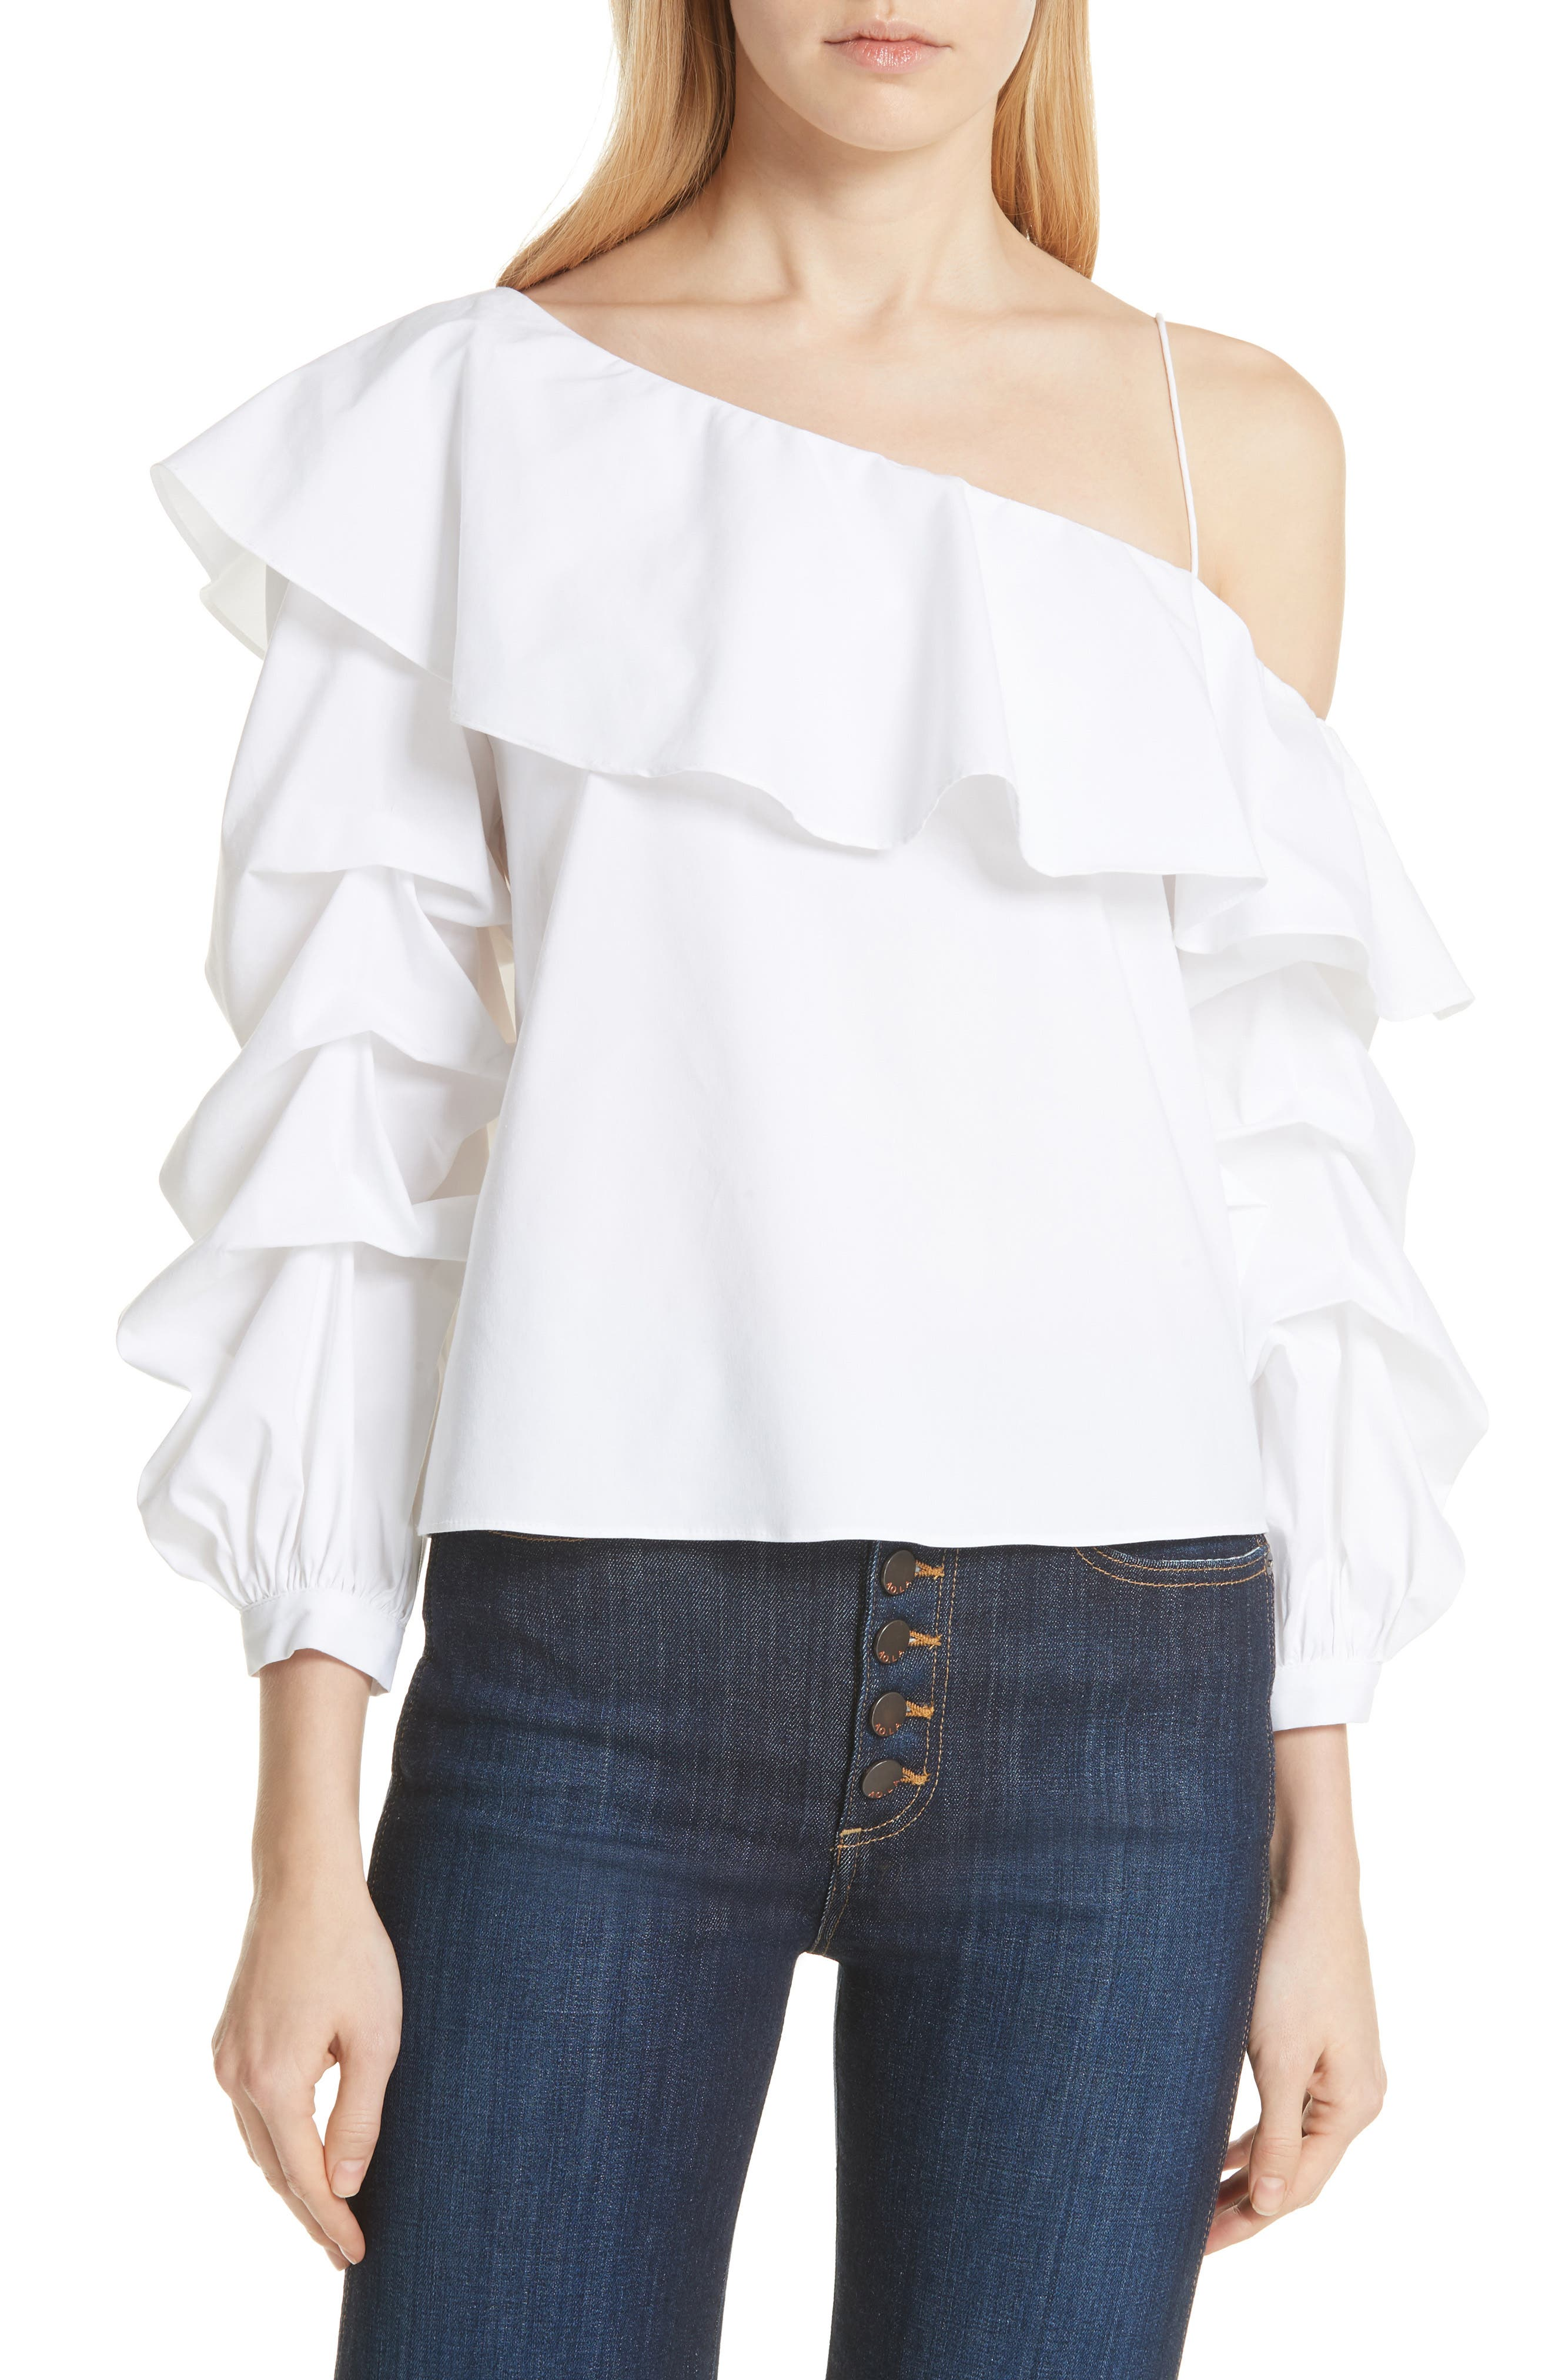 Irvine Ruffle One-Shoulder Blouse,                             Main thumbnail 1, color,                             White